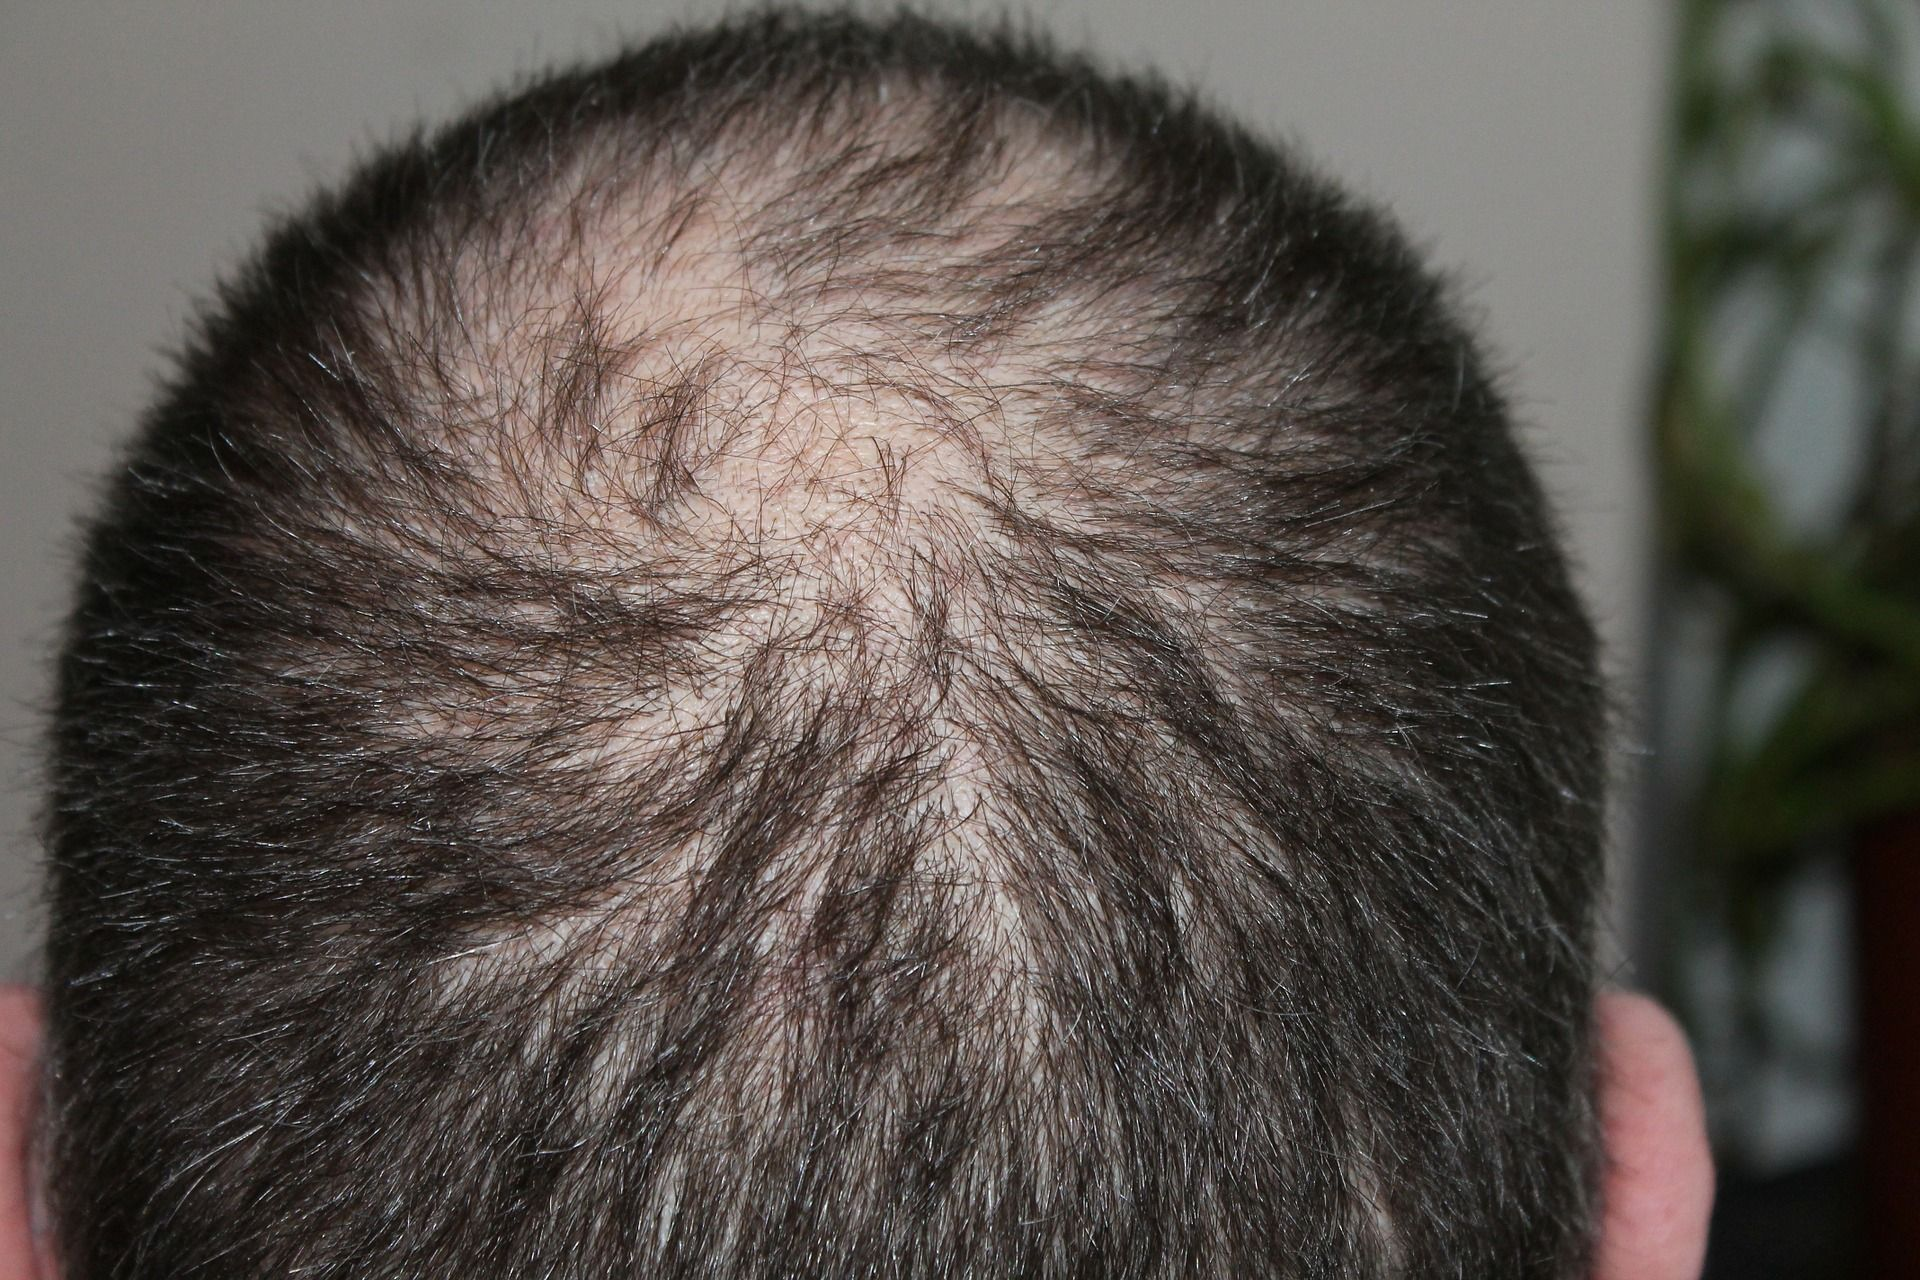 The Stem Cell Hair Transplant May Change the Future of Hair Regrowth